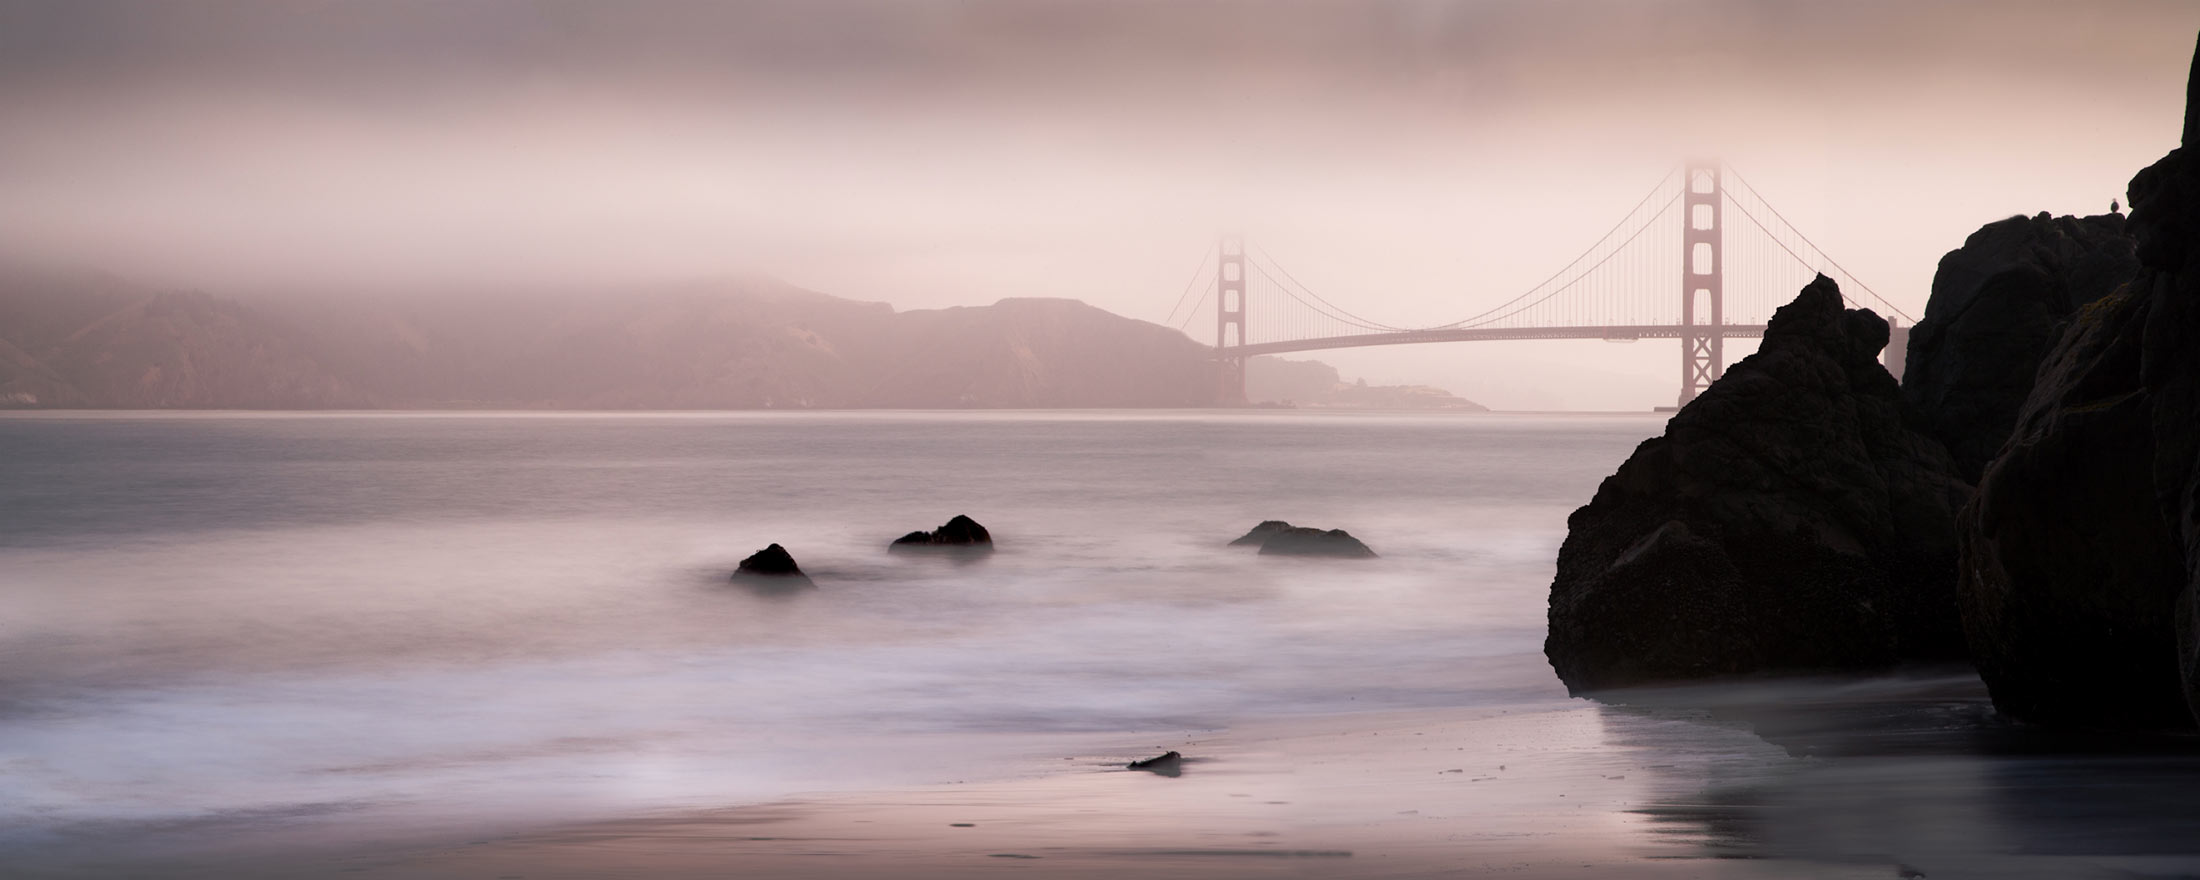 Christopher Erin | Golden Gate Bridge